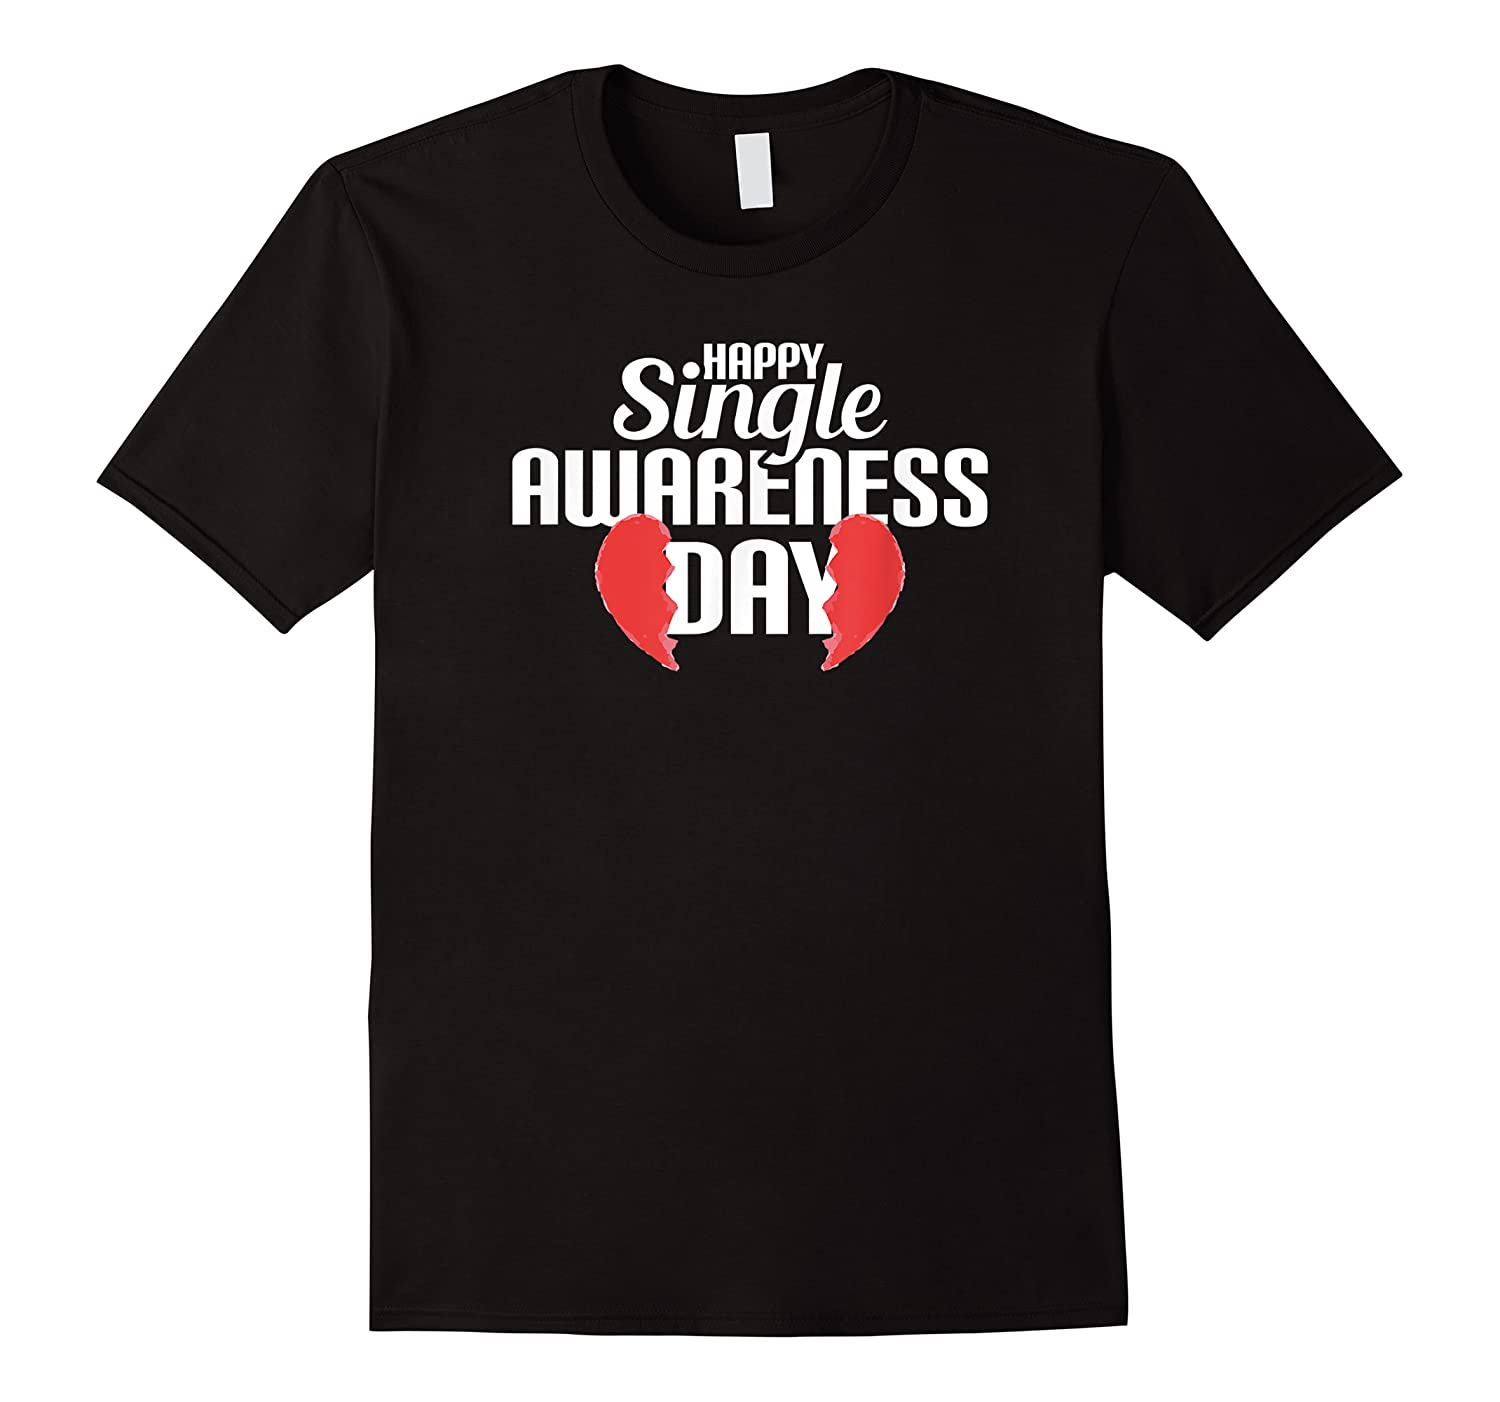 Funny Broken Hearted Perfect Attire Humorous Top Shirts